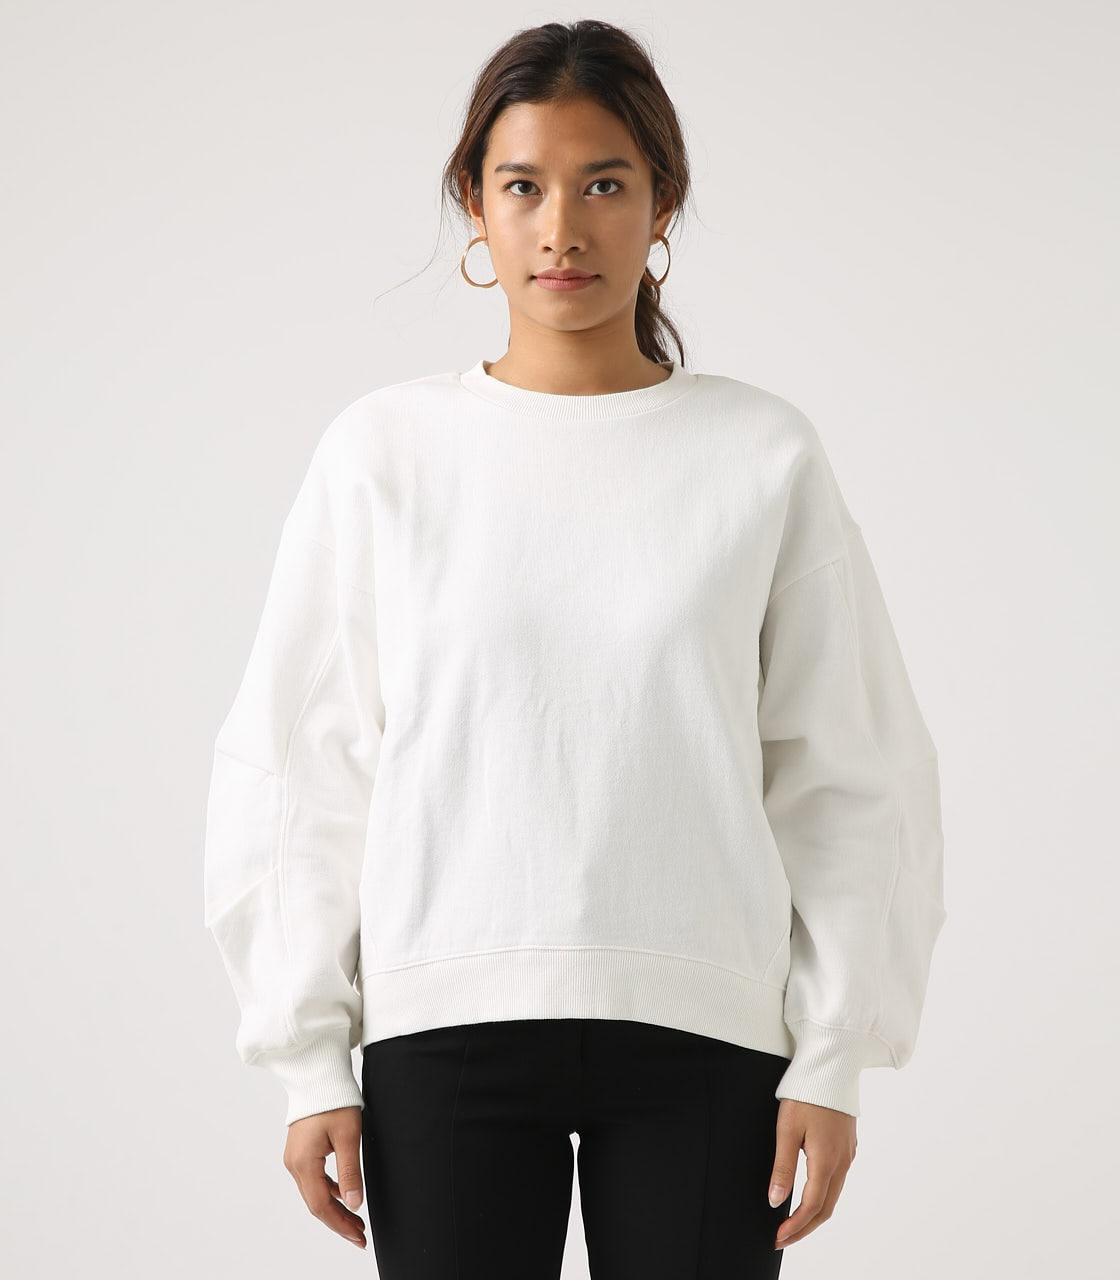 【AZUL BY MOUSSY】SLEEVE TUCK SWEAT TOPS 詳細画像 O/WHT 5